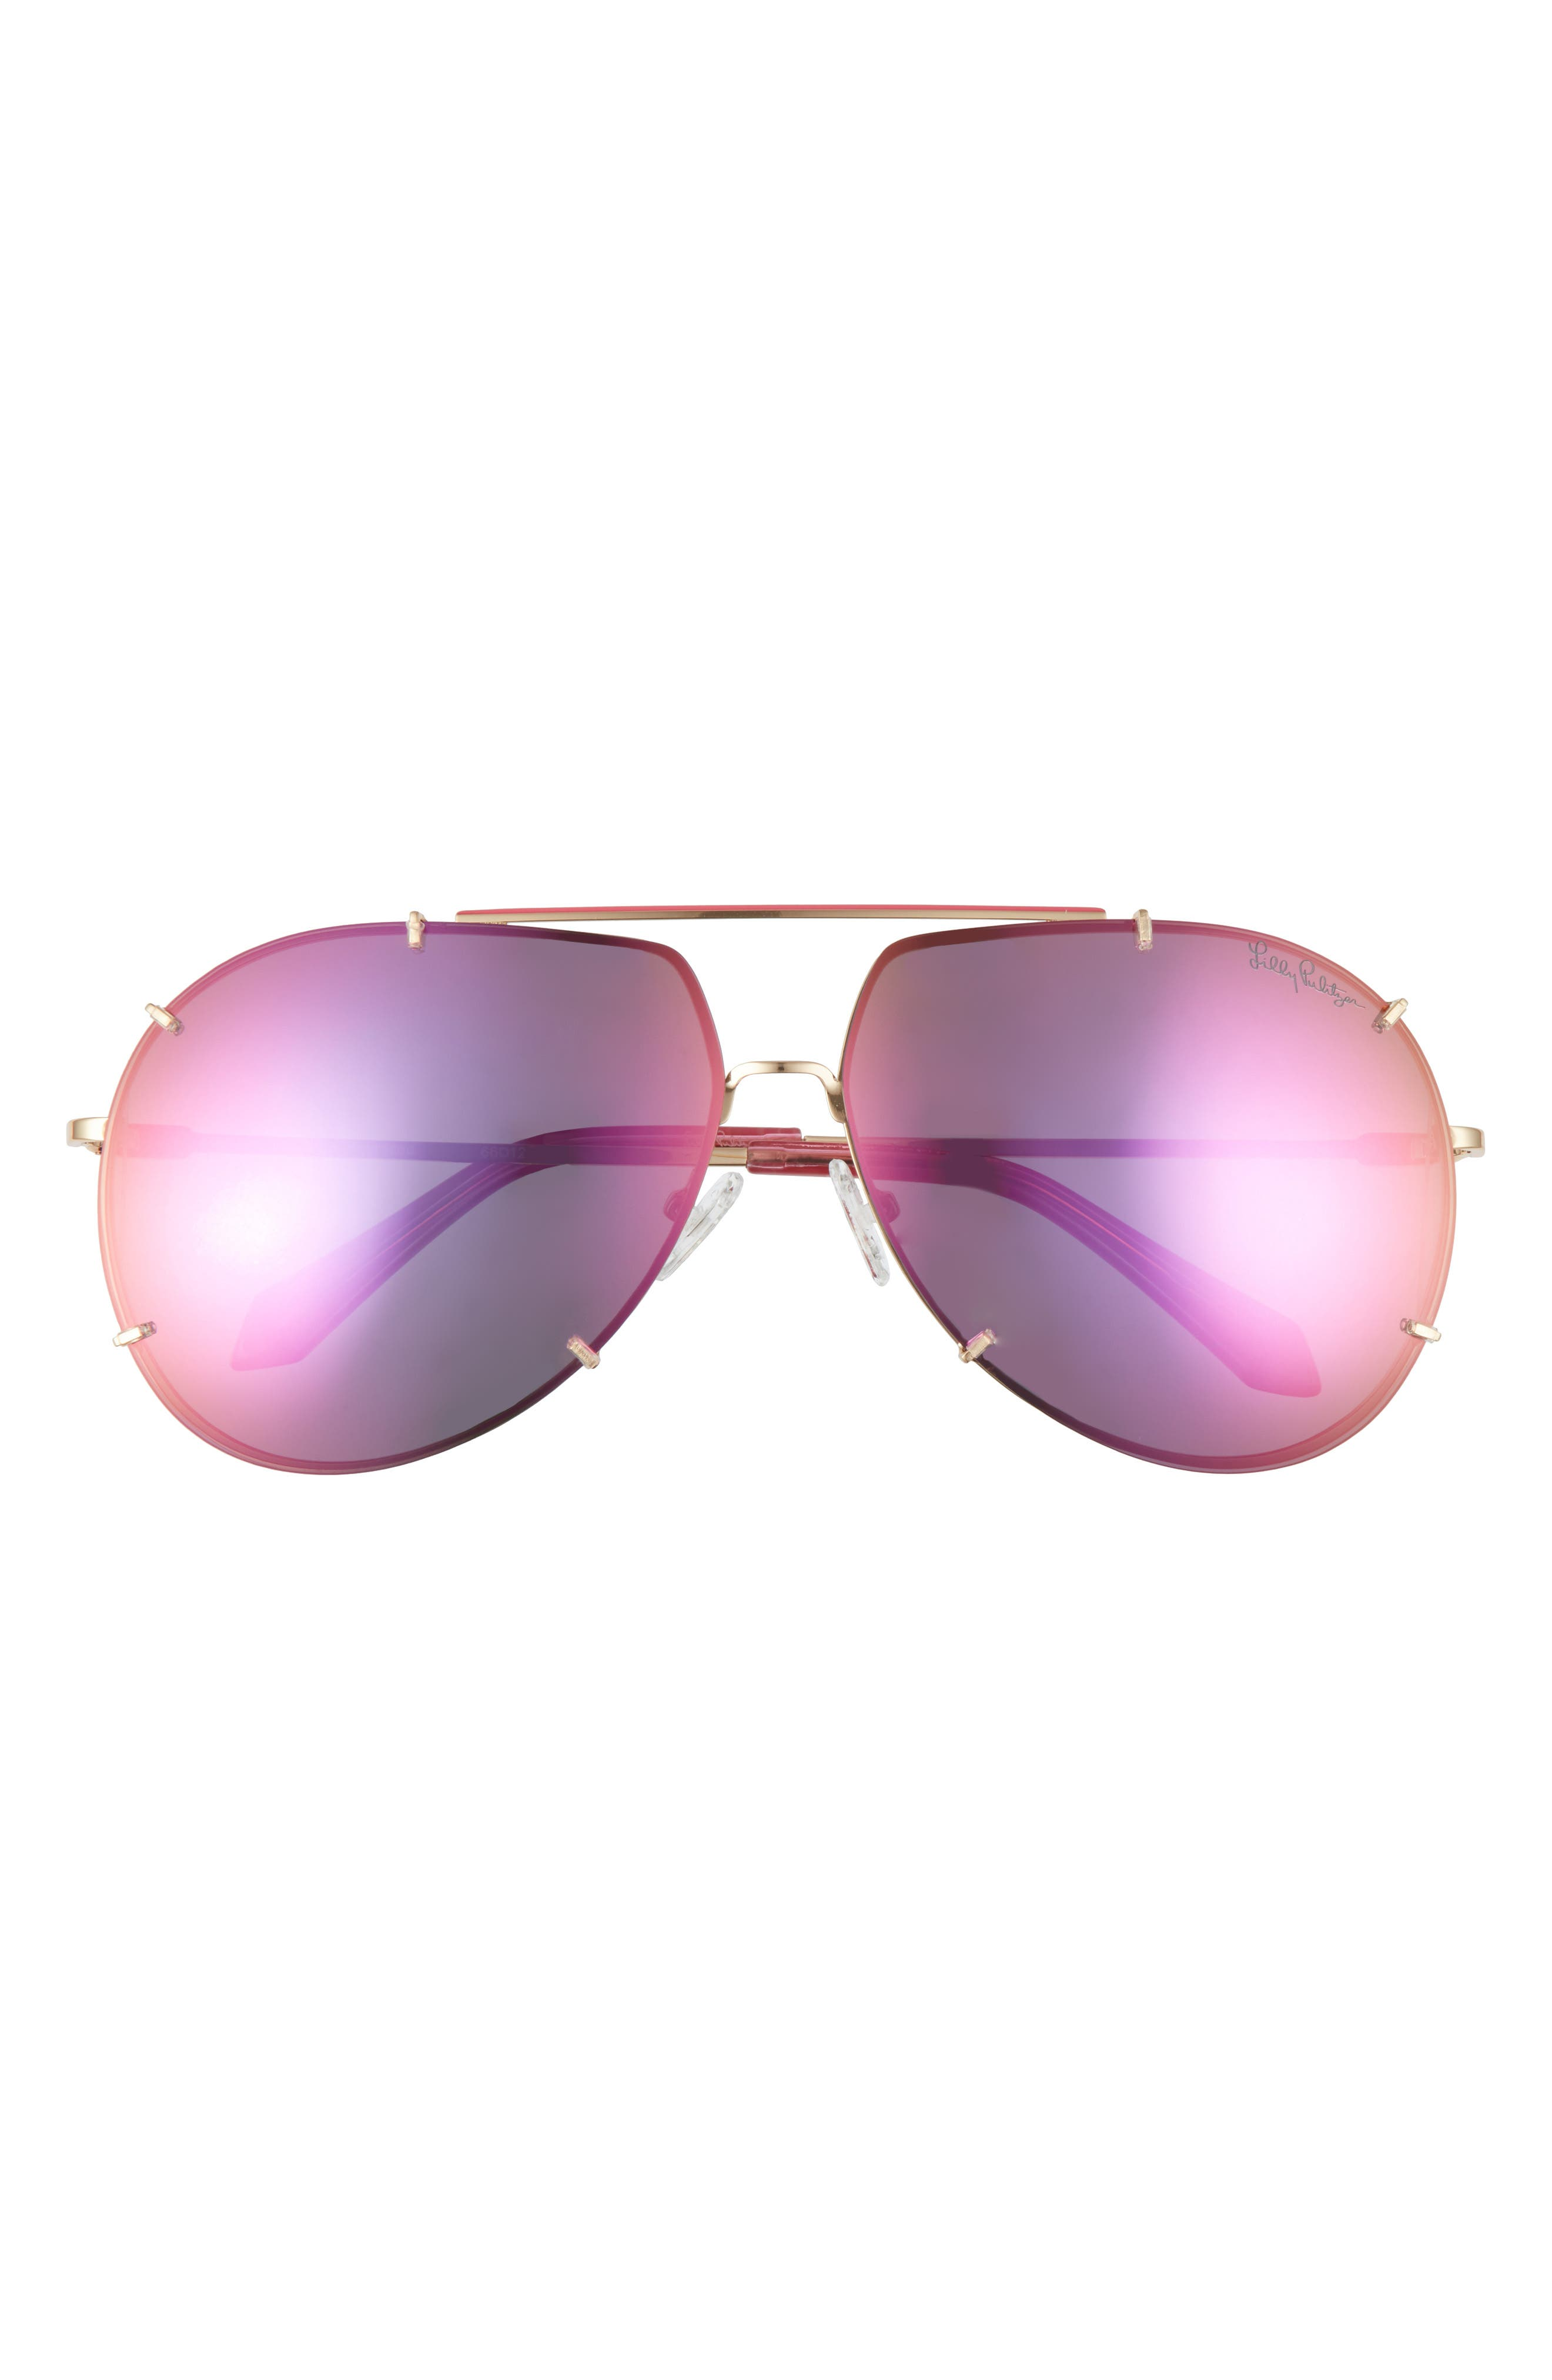 Mirrored lenses with a glare-reducing polarized finish add suave style and utility to these oversized aviator sunglasses. Style Name: Lilly Pulitzer 66mm Adelia Oversize Polarized Aviator Sunglasses. Style Number: 6104398. Available in stores.